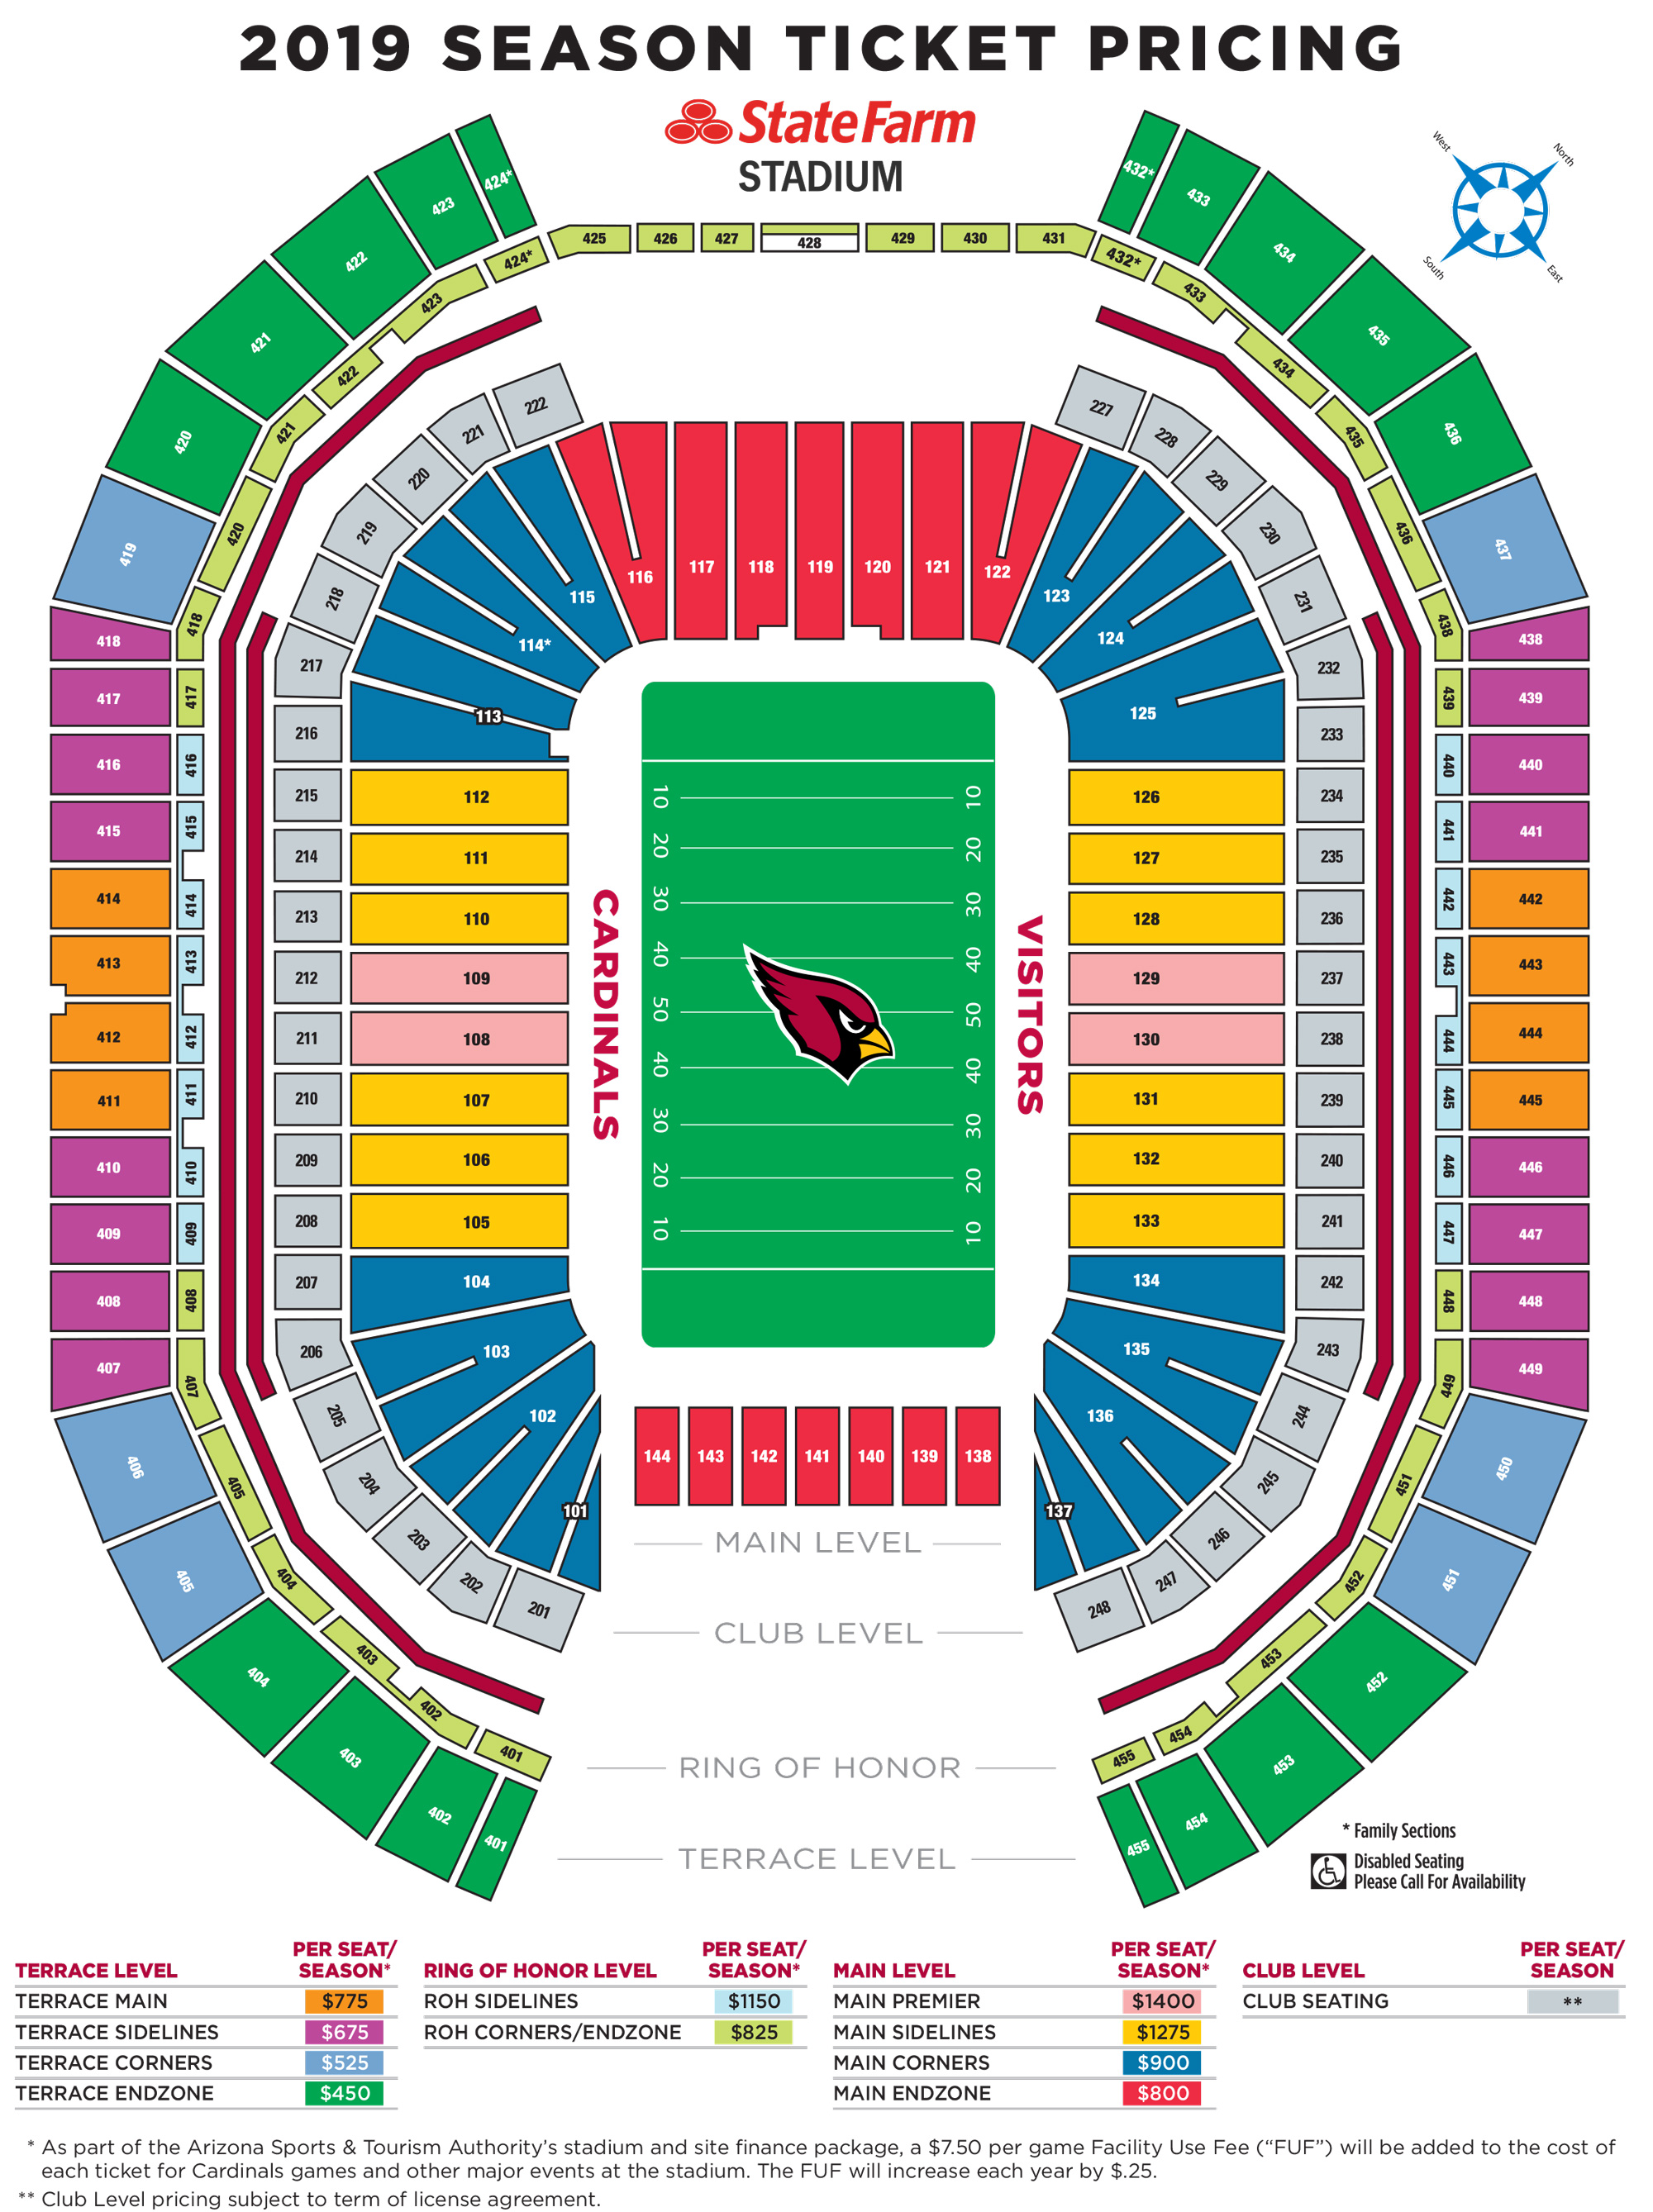 Map Of Arizona Please.Cardinals Official Team Website I Arizona Cardinals Azcardinals Com